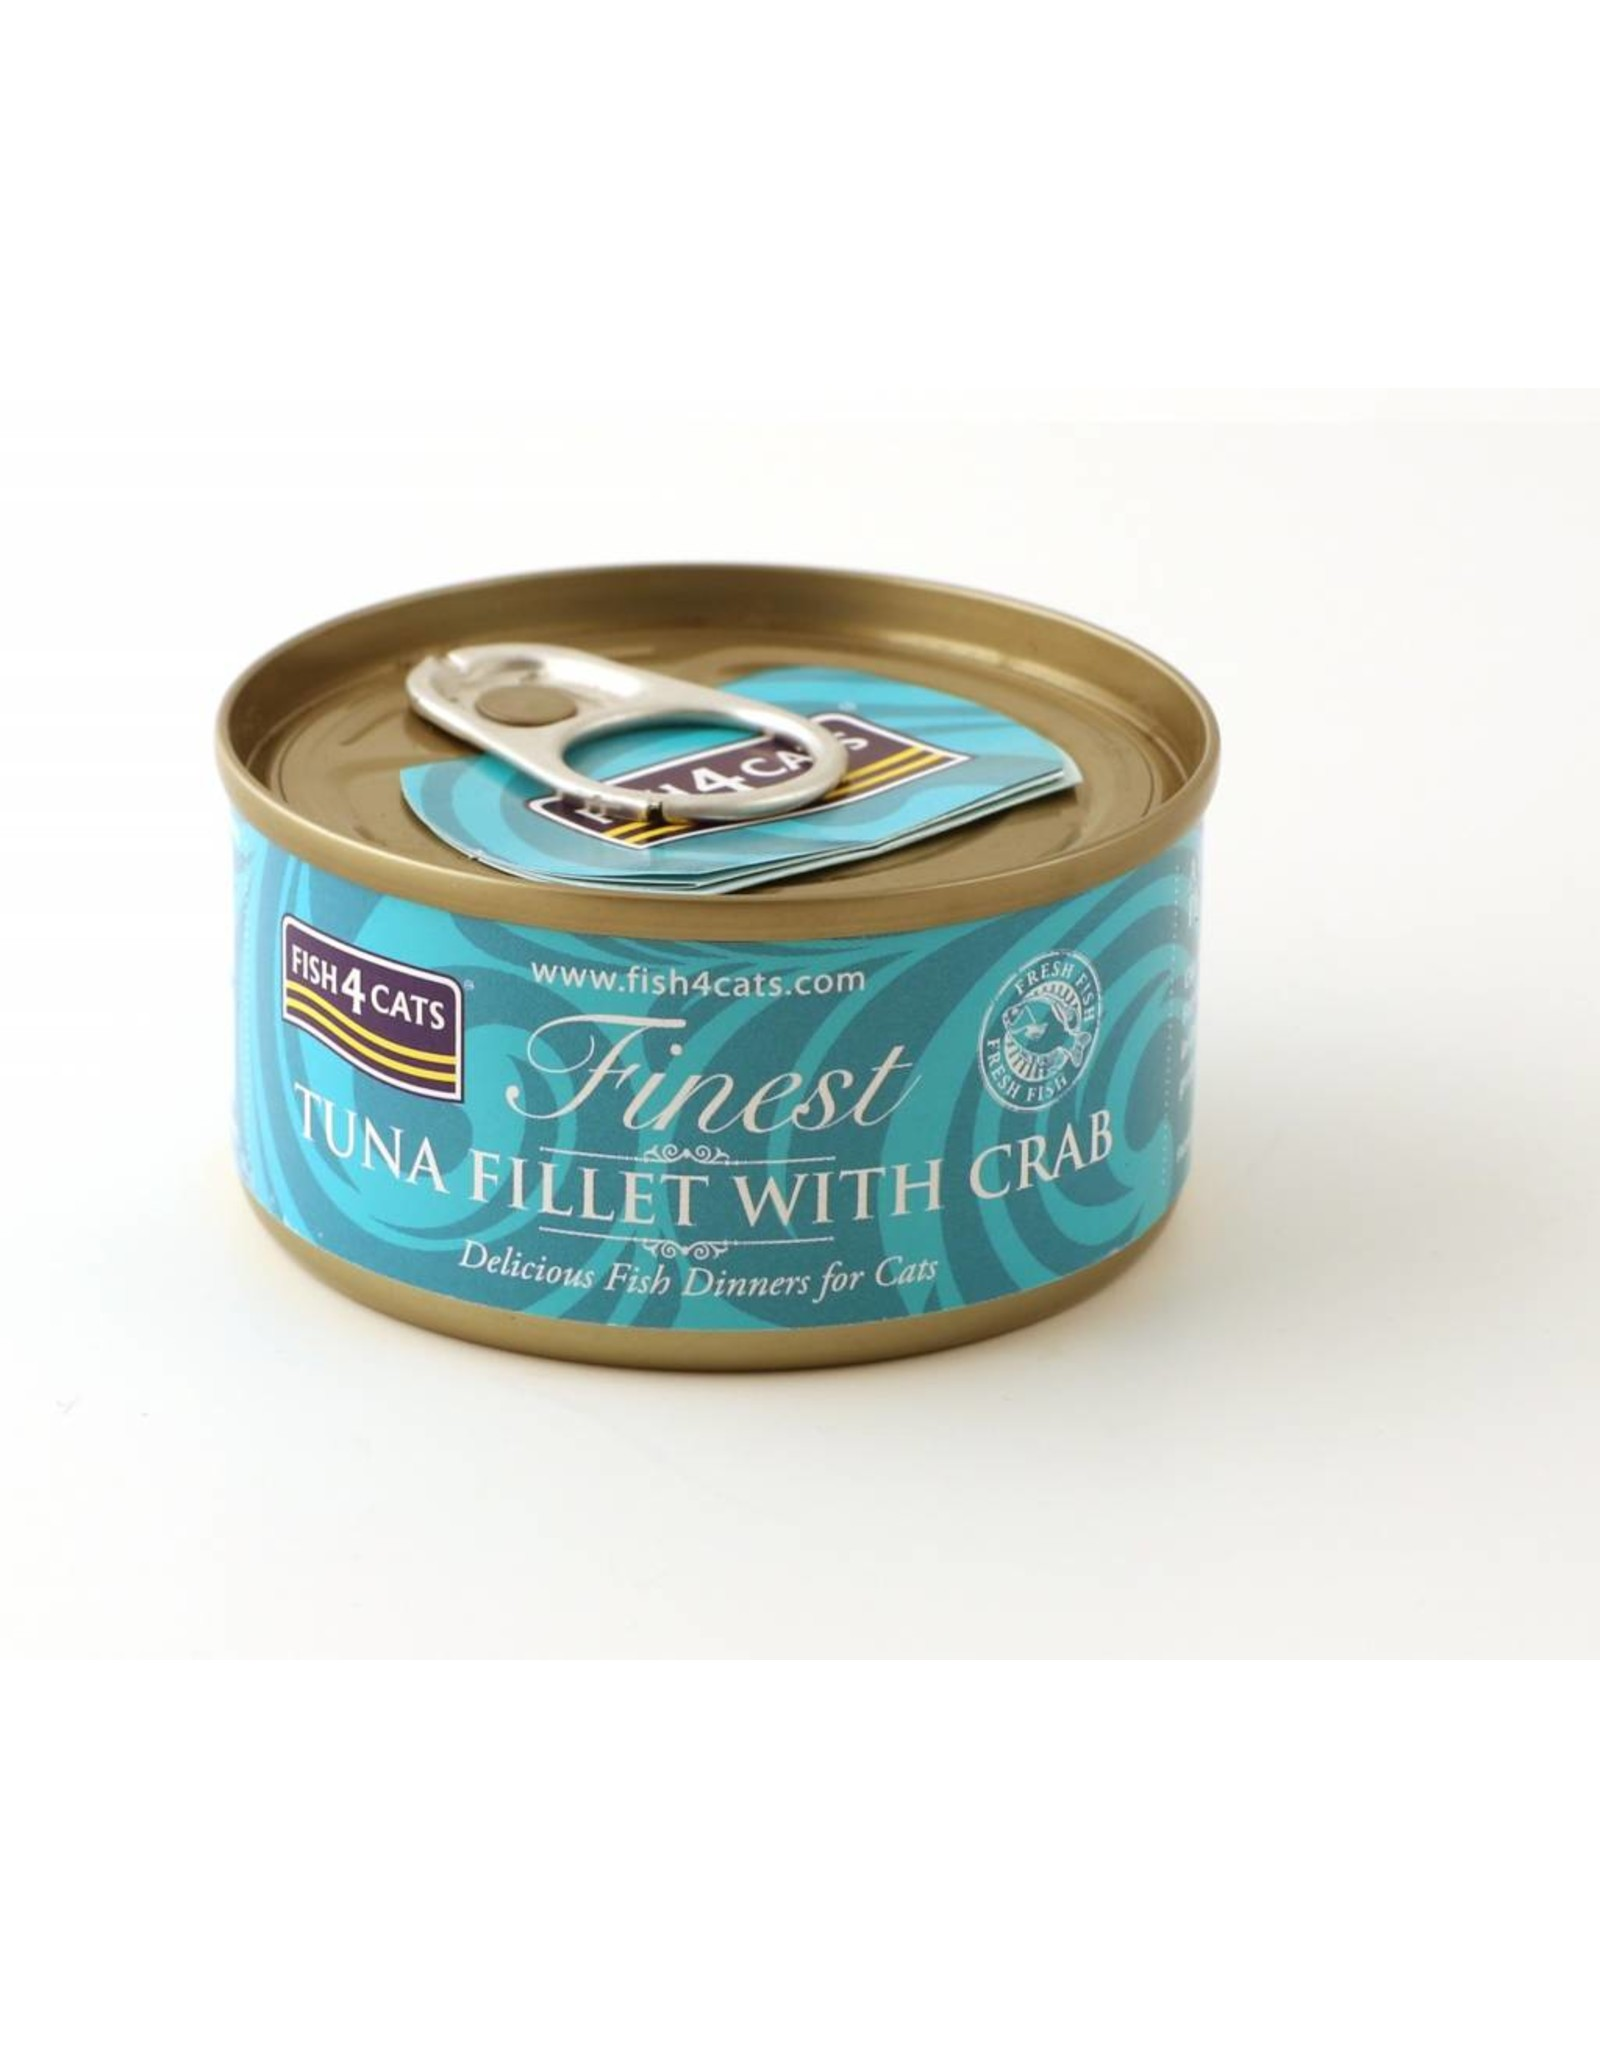 Fish4Cats Finest Tuna Fillet with Crab Wet Cat Food, 70g